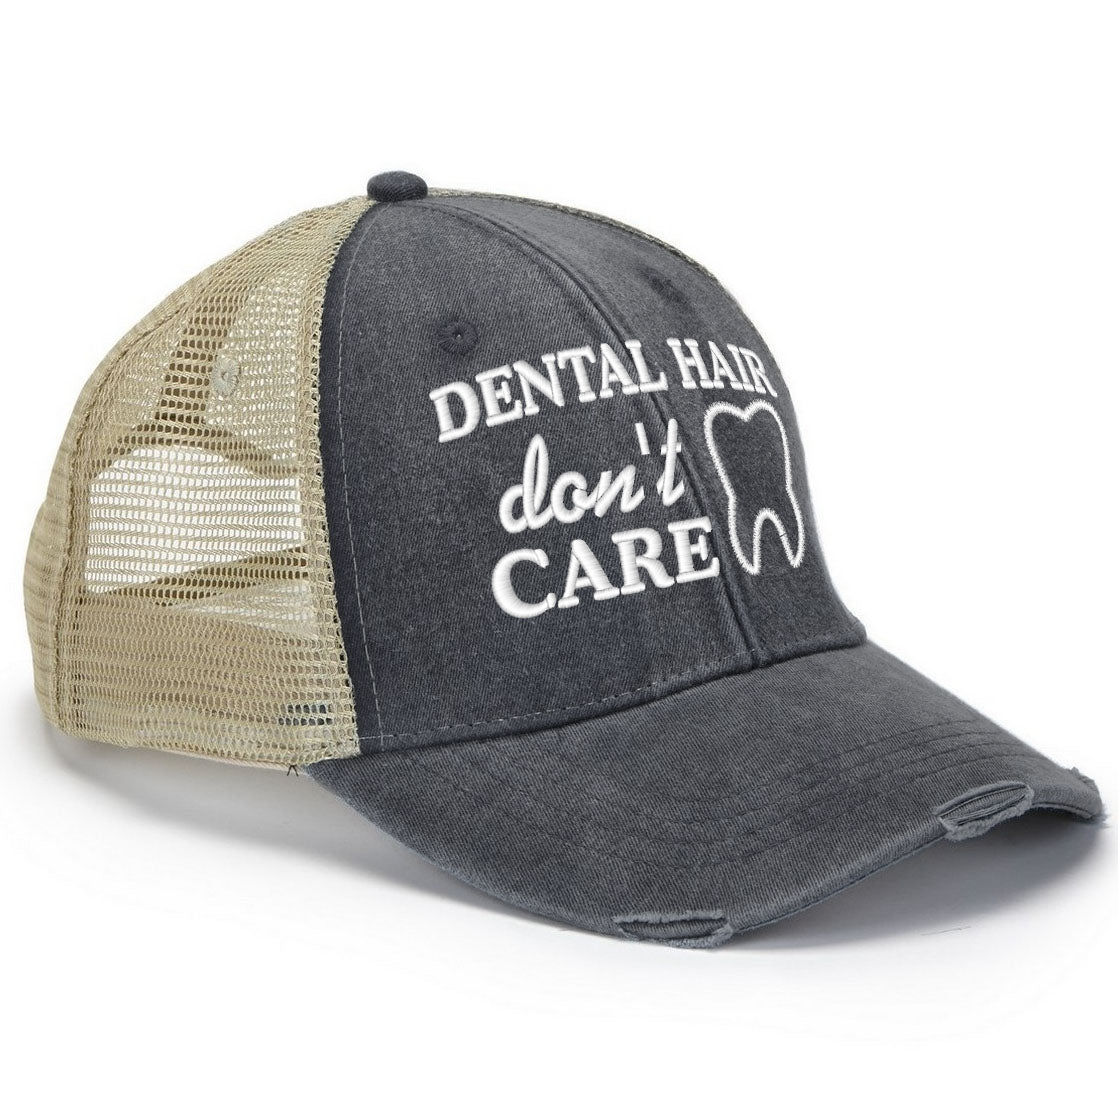 Dental Hair Don't Care Hat